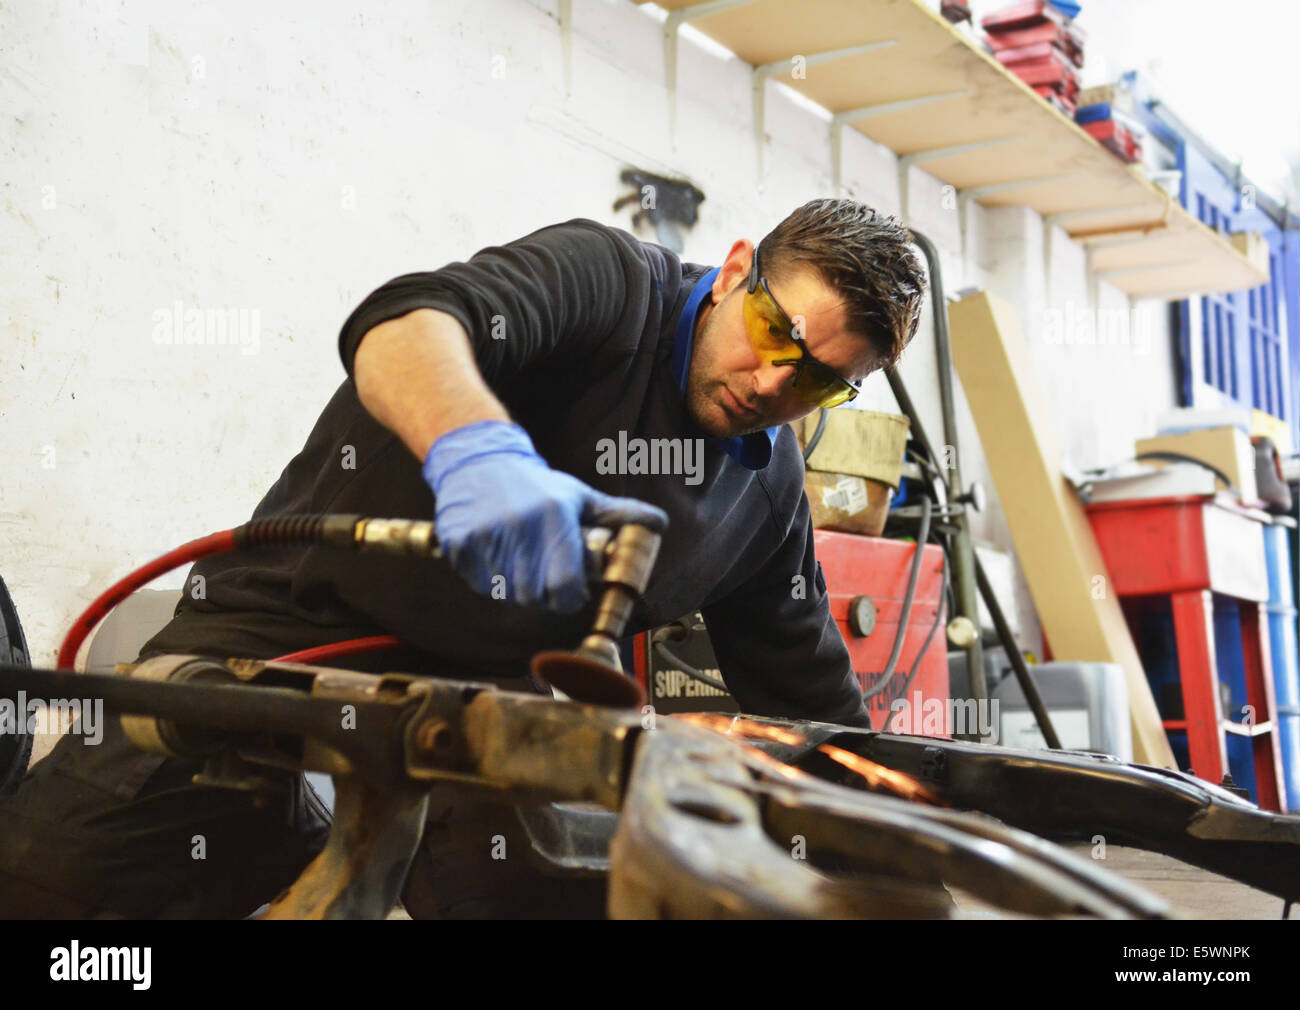 Mechanic cutting engine part with grinder - Stock Image